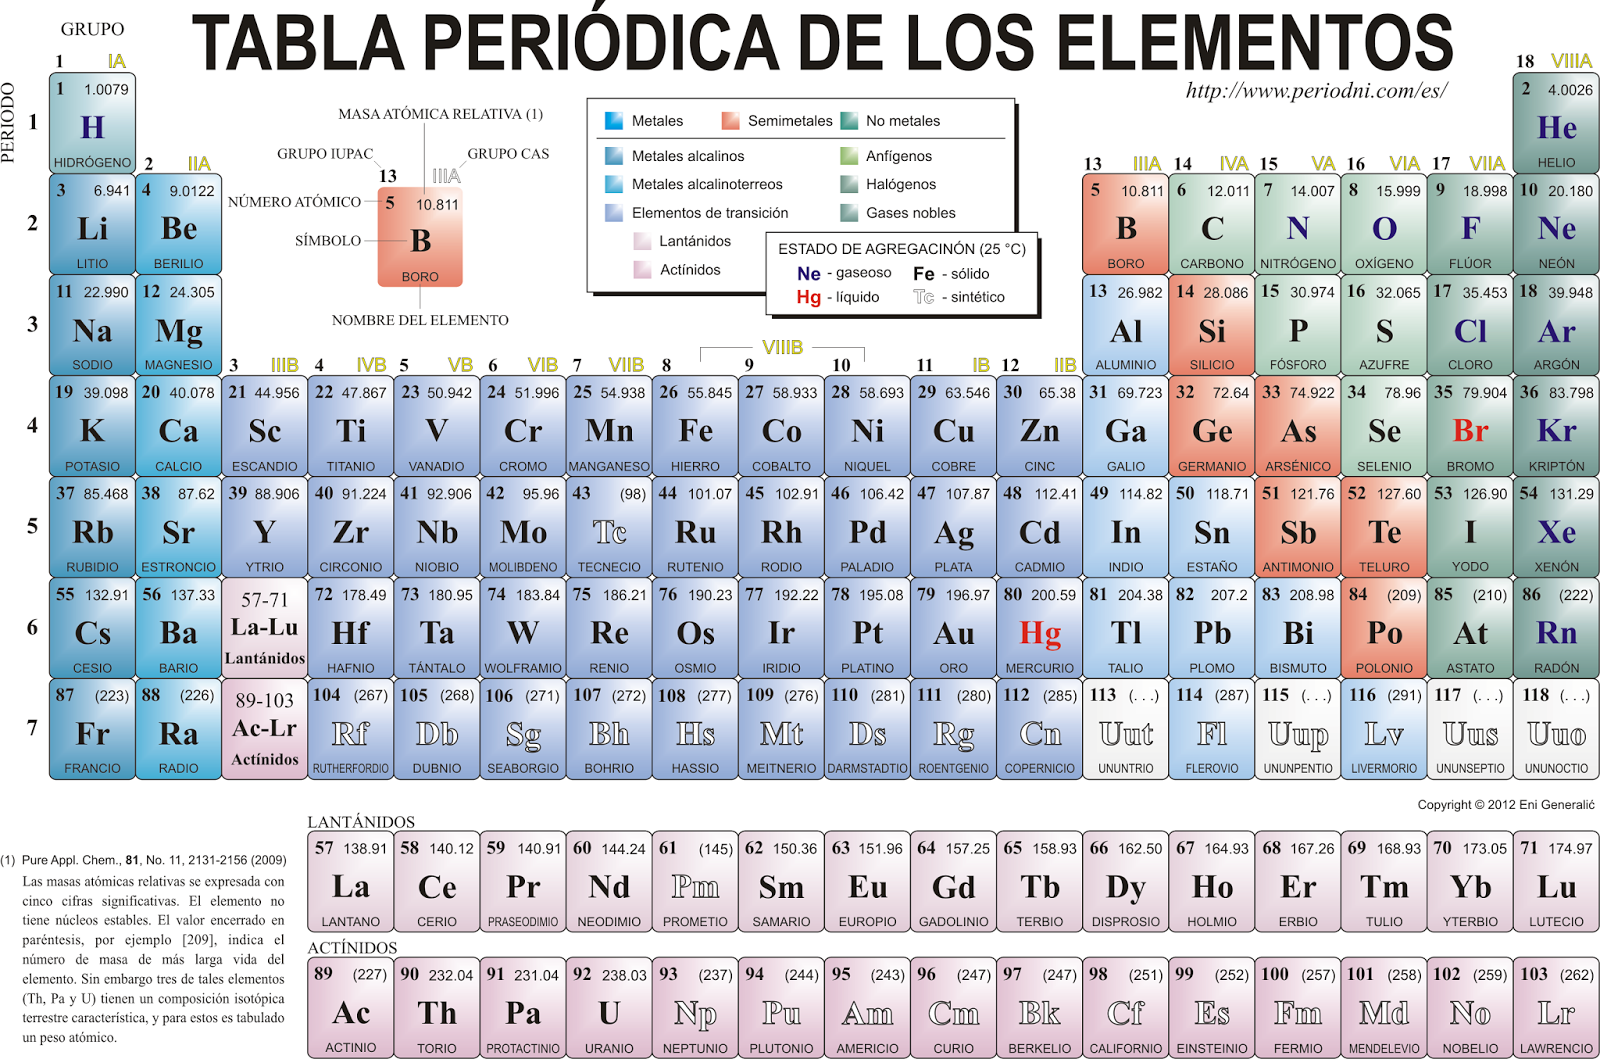 Tabla peridica de elementos qumicos periodic tables of the wolframio urtaz Image collections